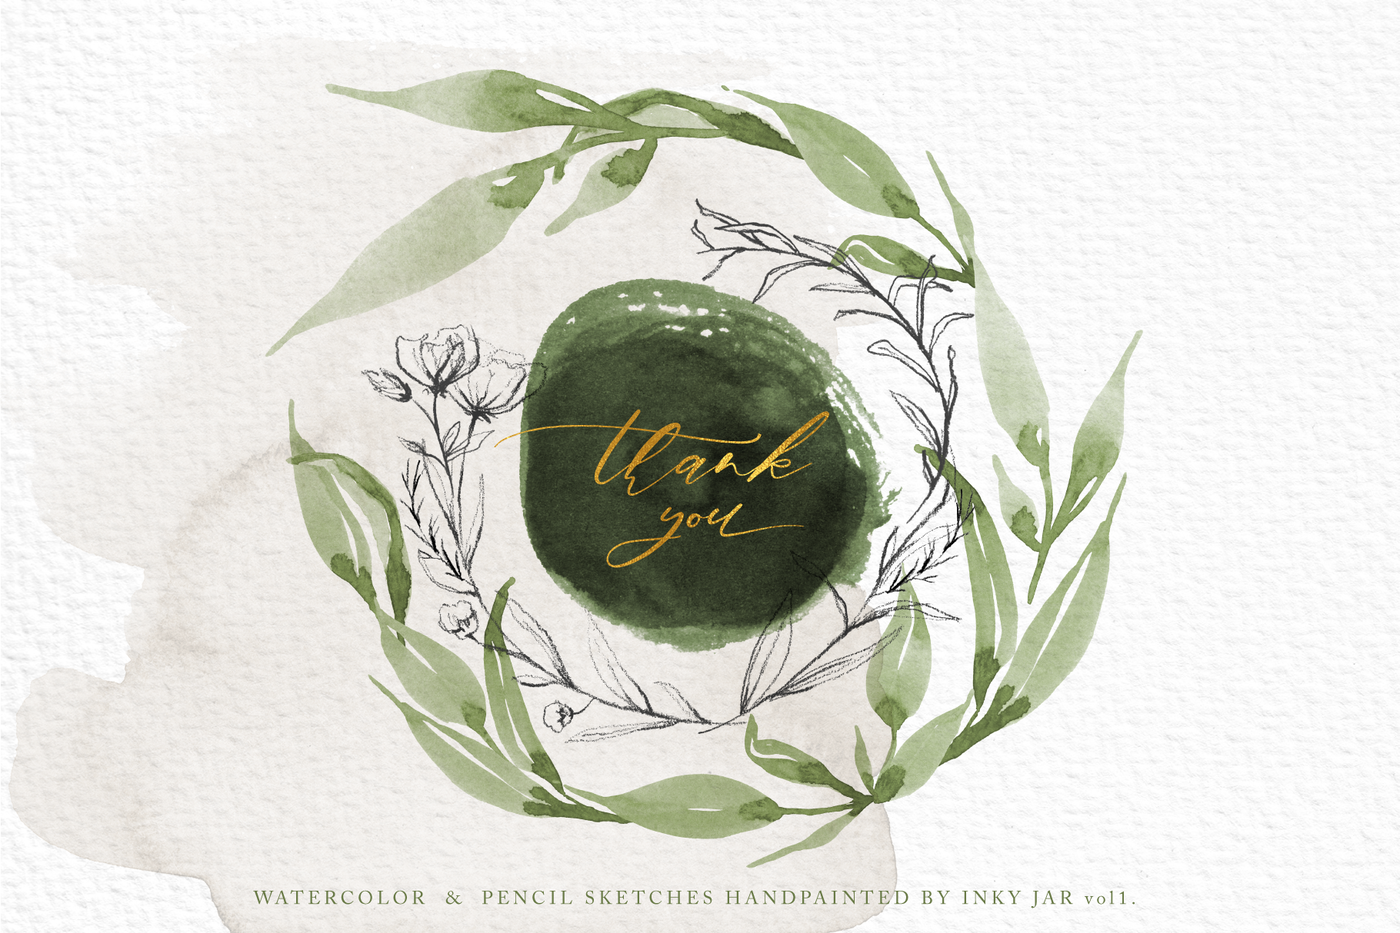 Delicate Greenery Watercolor Pencil Sketches By Inky Jar